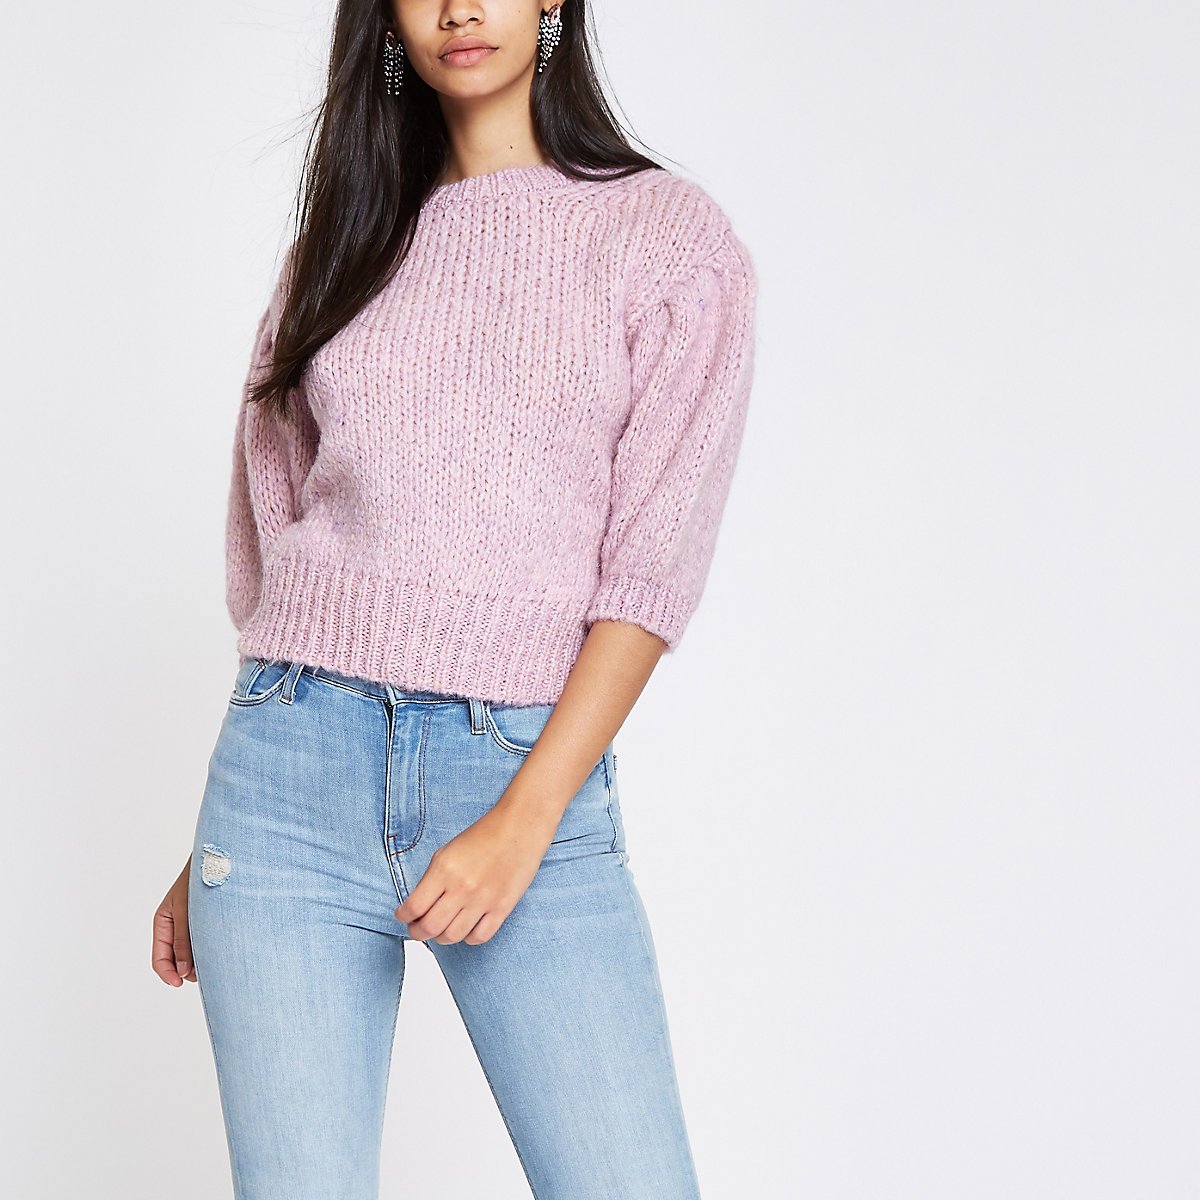 Pink knit cropped sweater